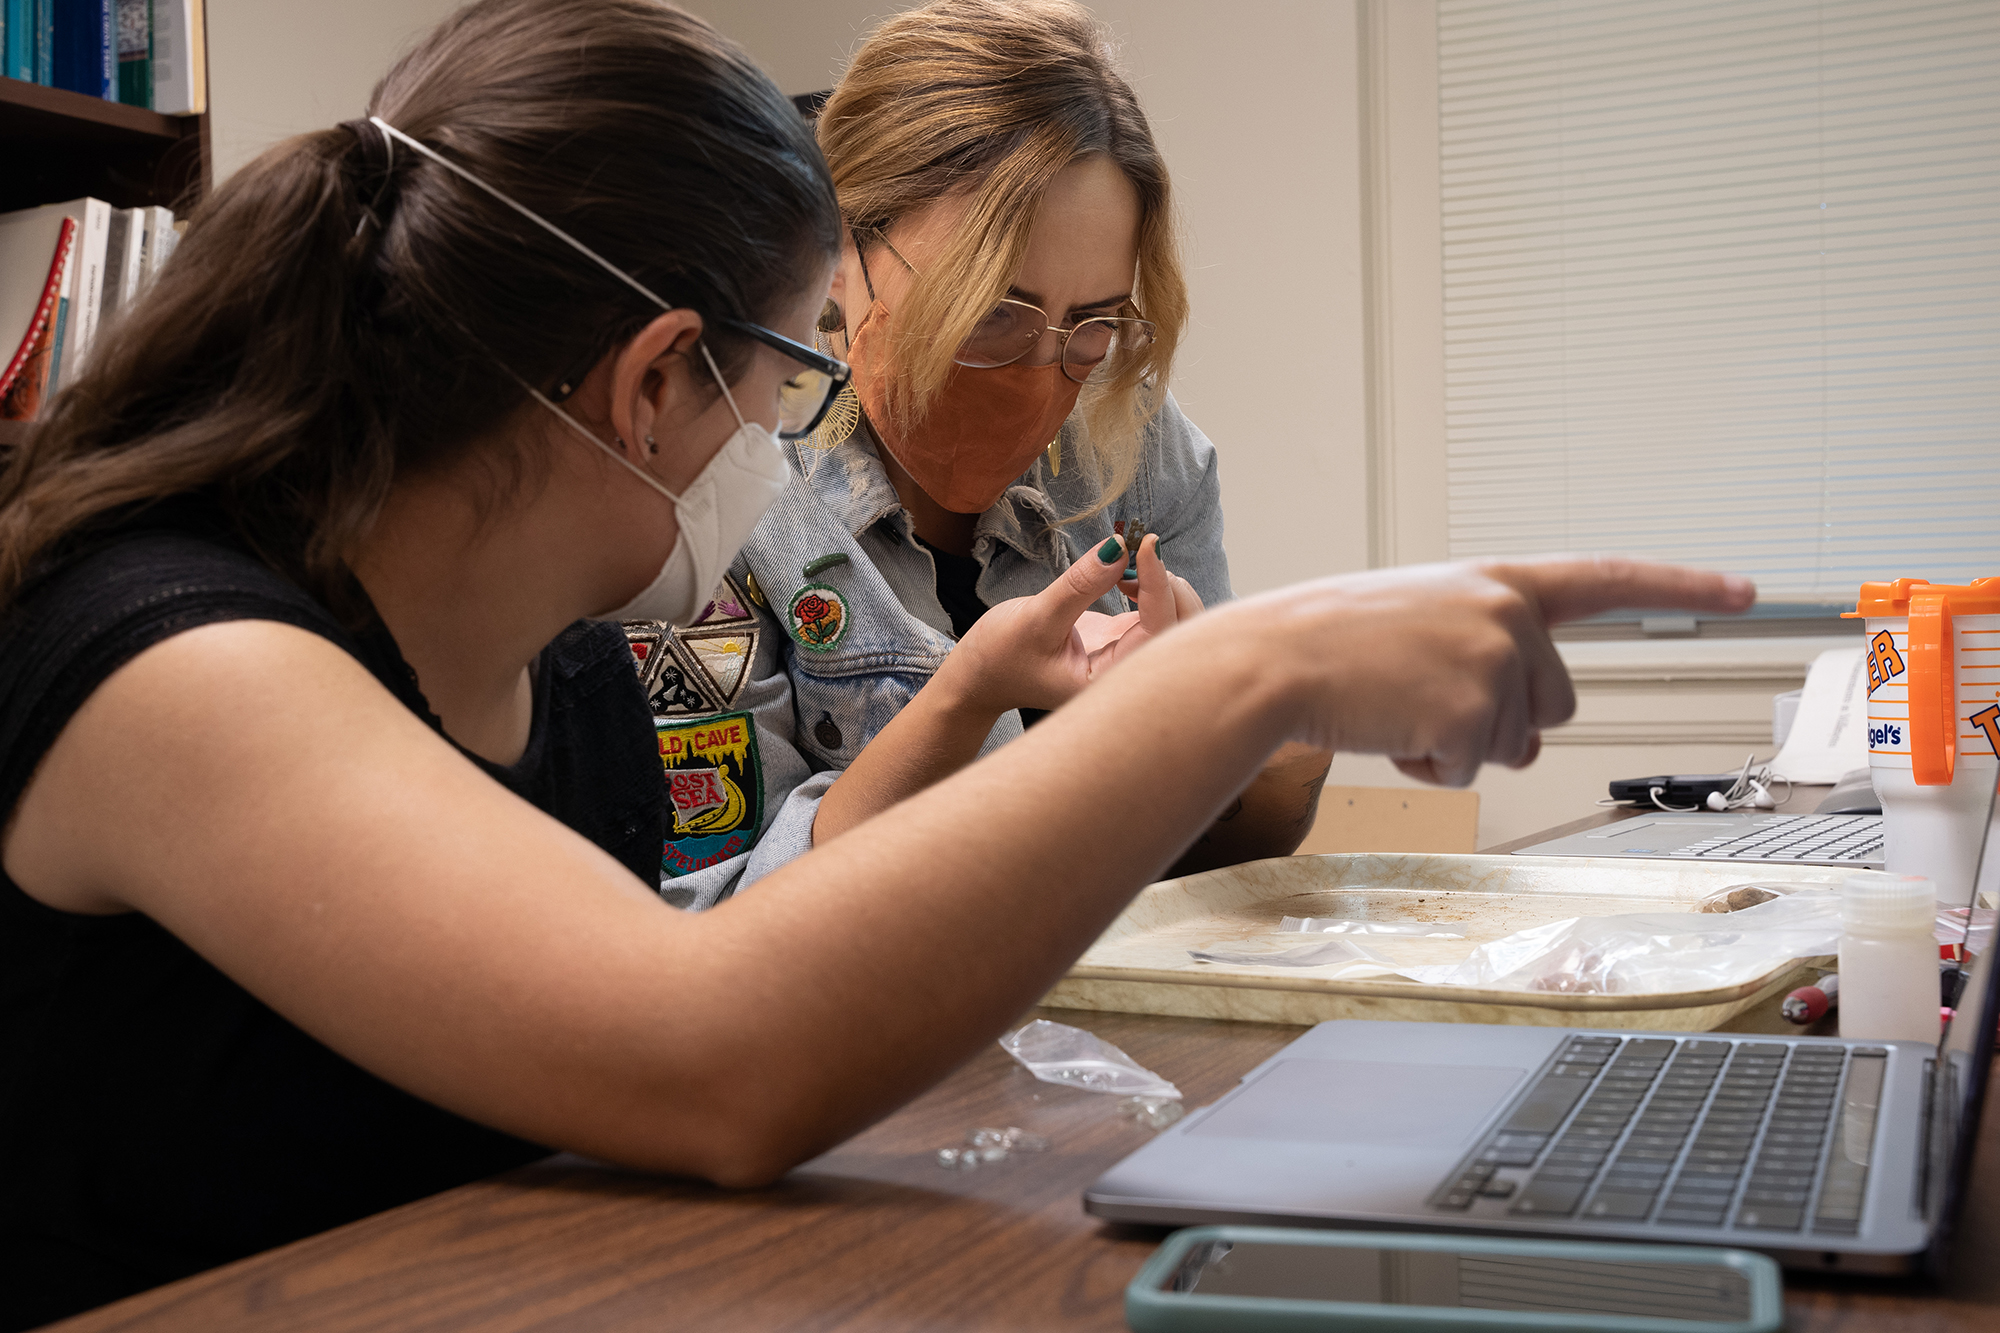 Colleen Betti and Cayla Colclasure analyze artifacts in a lab at UNC